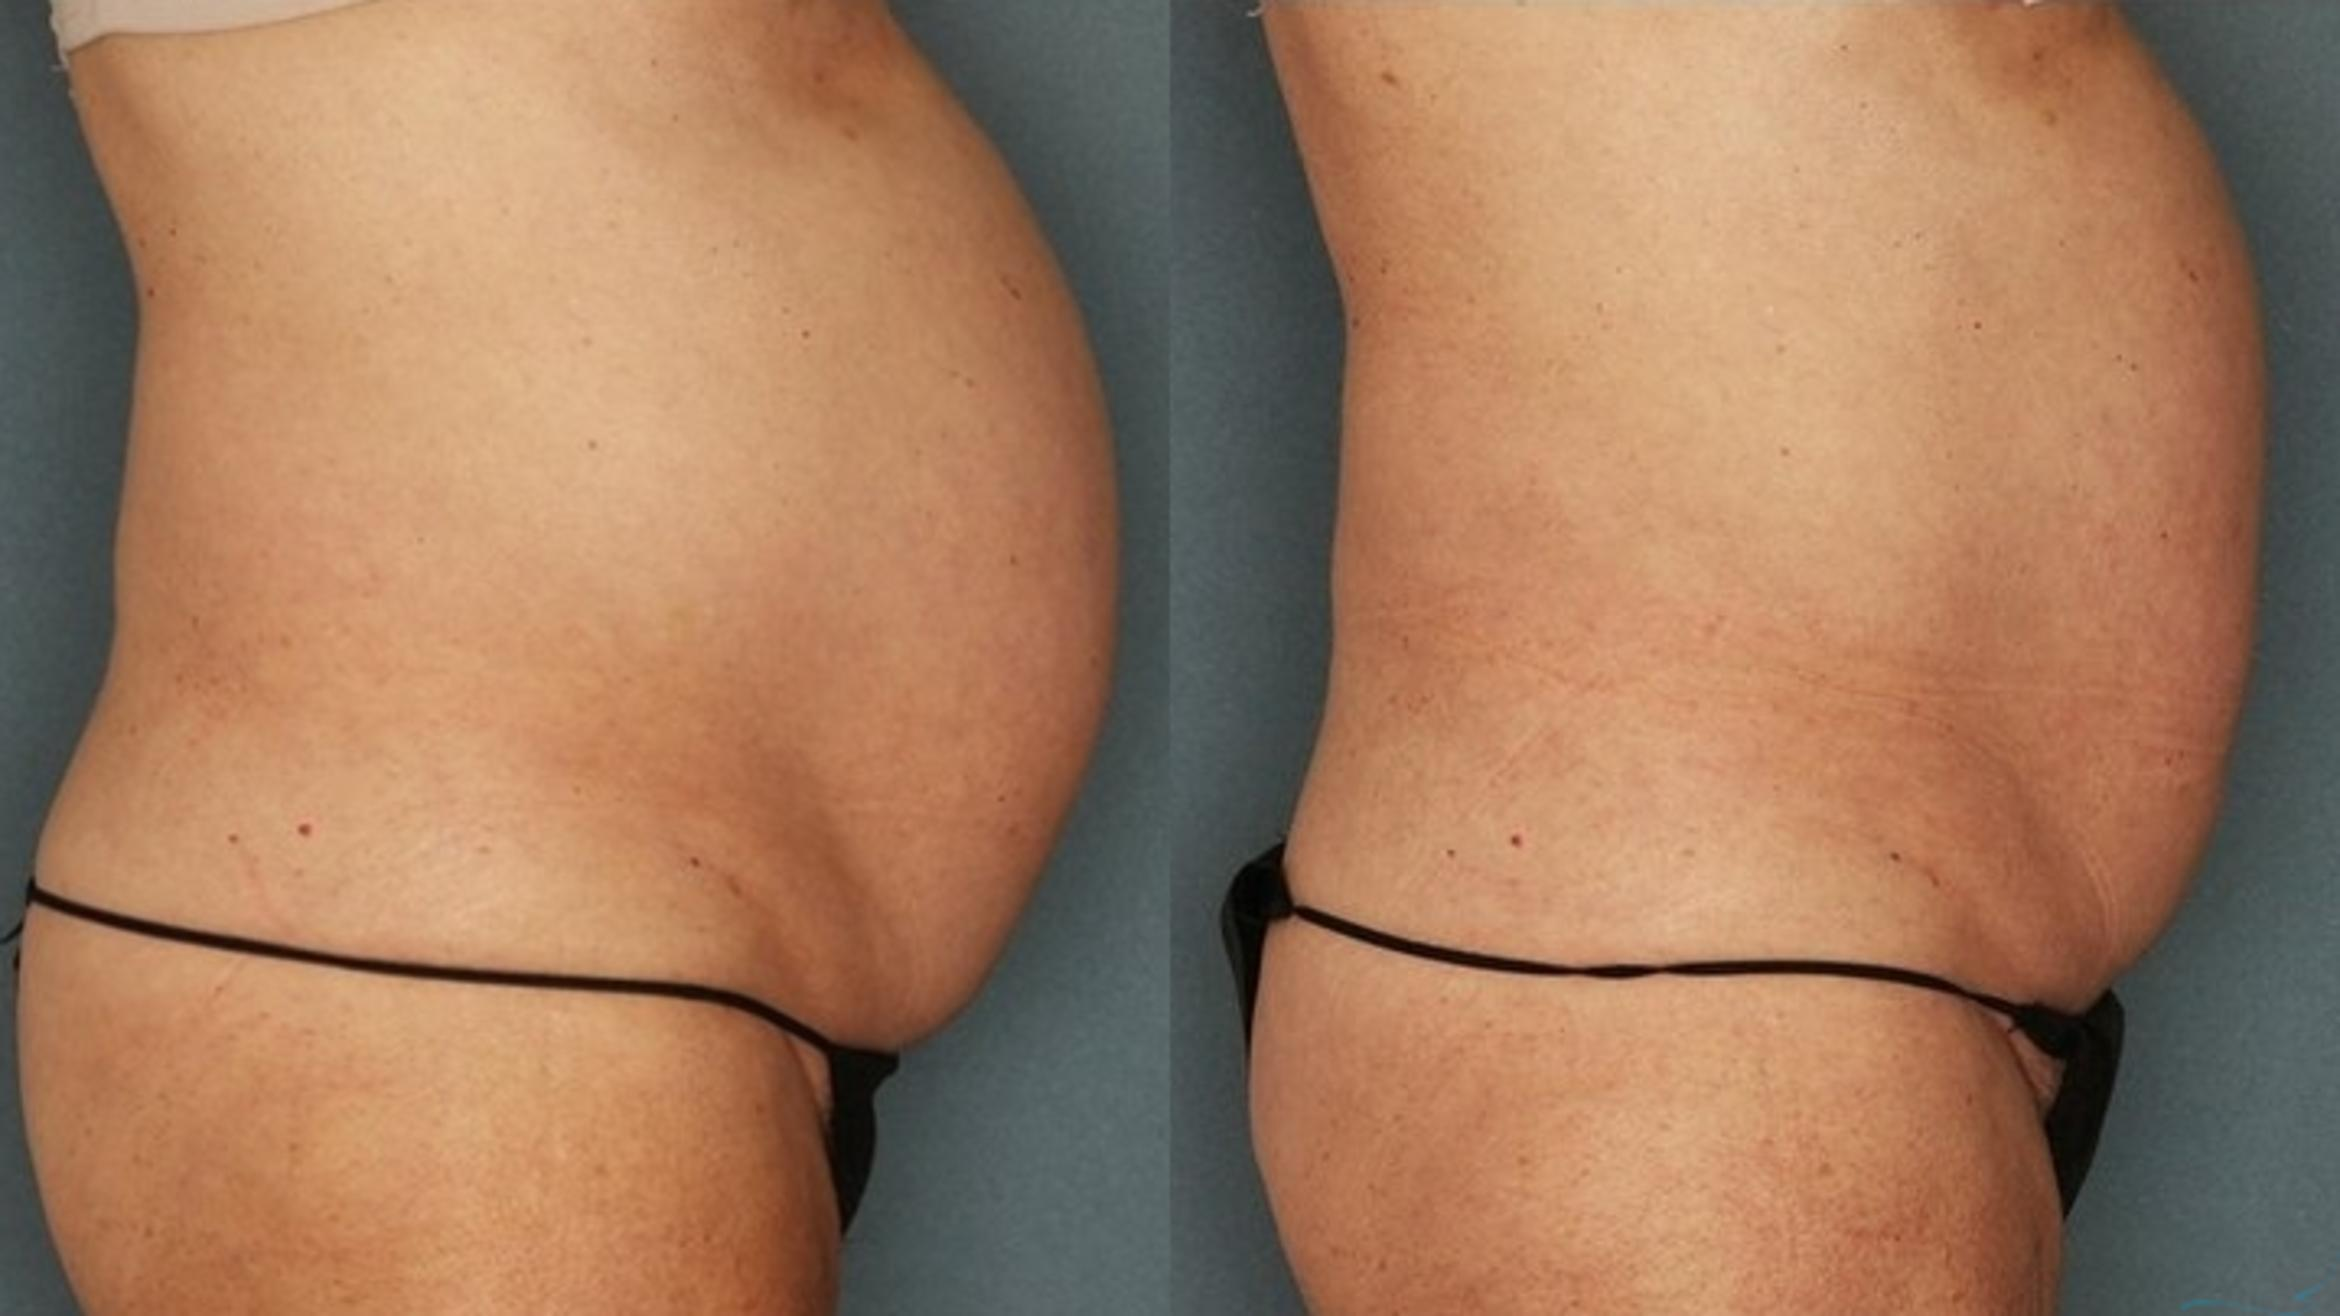 Body Contouring Case 37 Before & After Right Side | Livermore, CA | Silhouette Med Spa & Weight Management